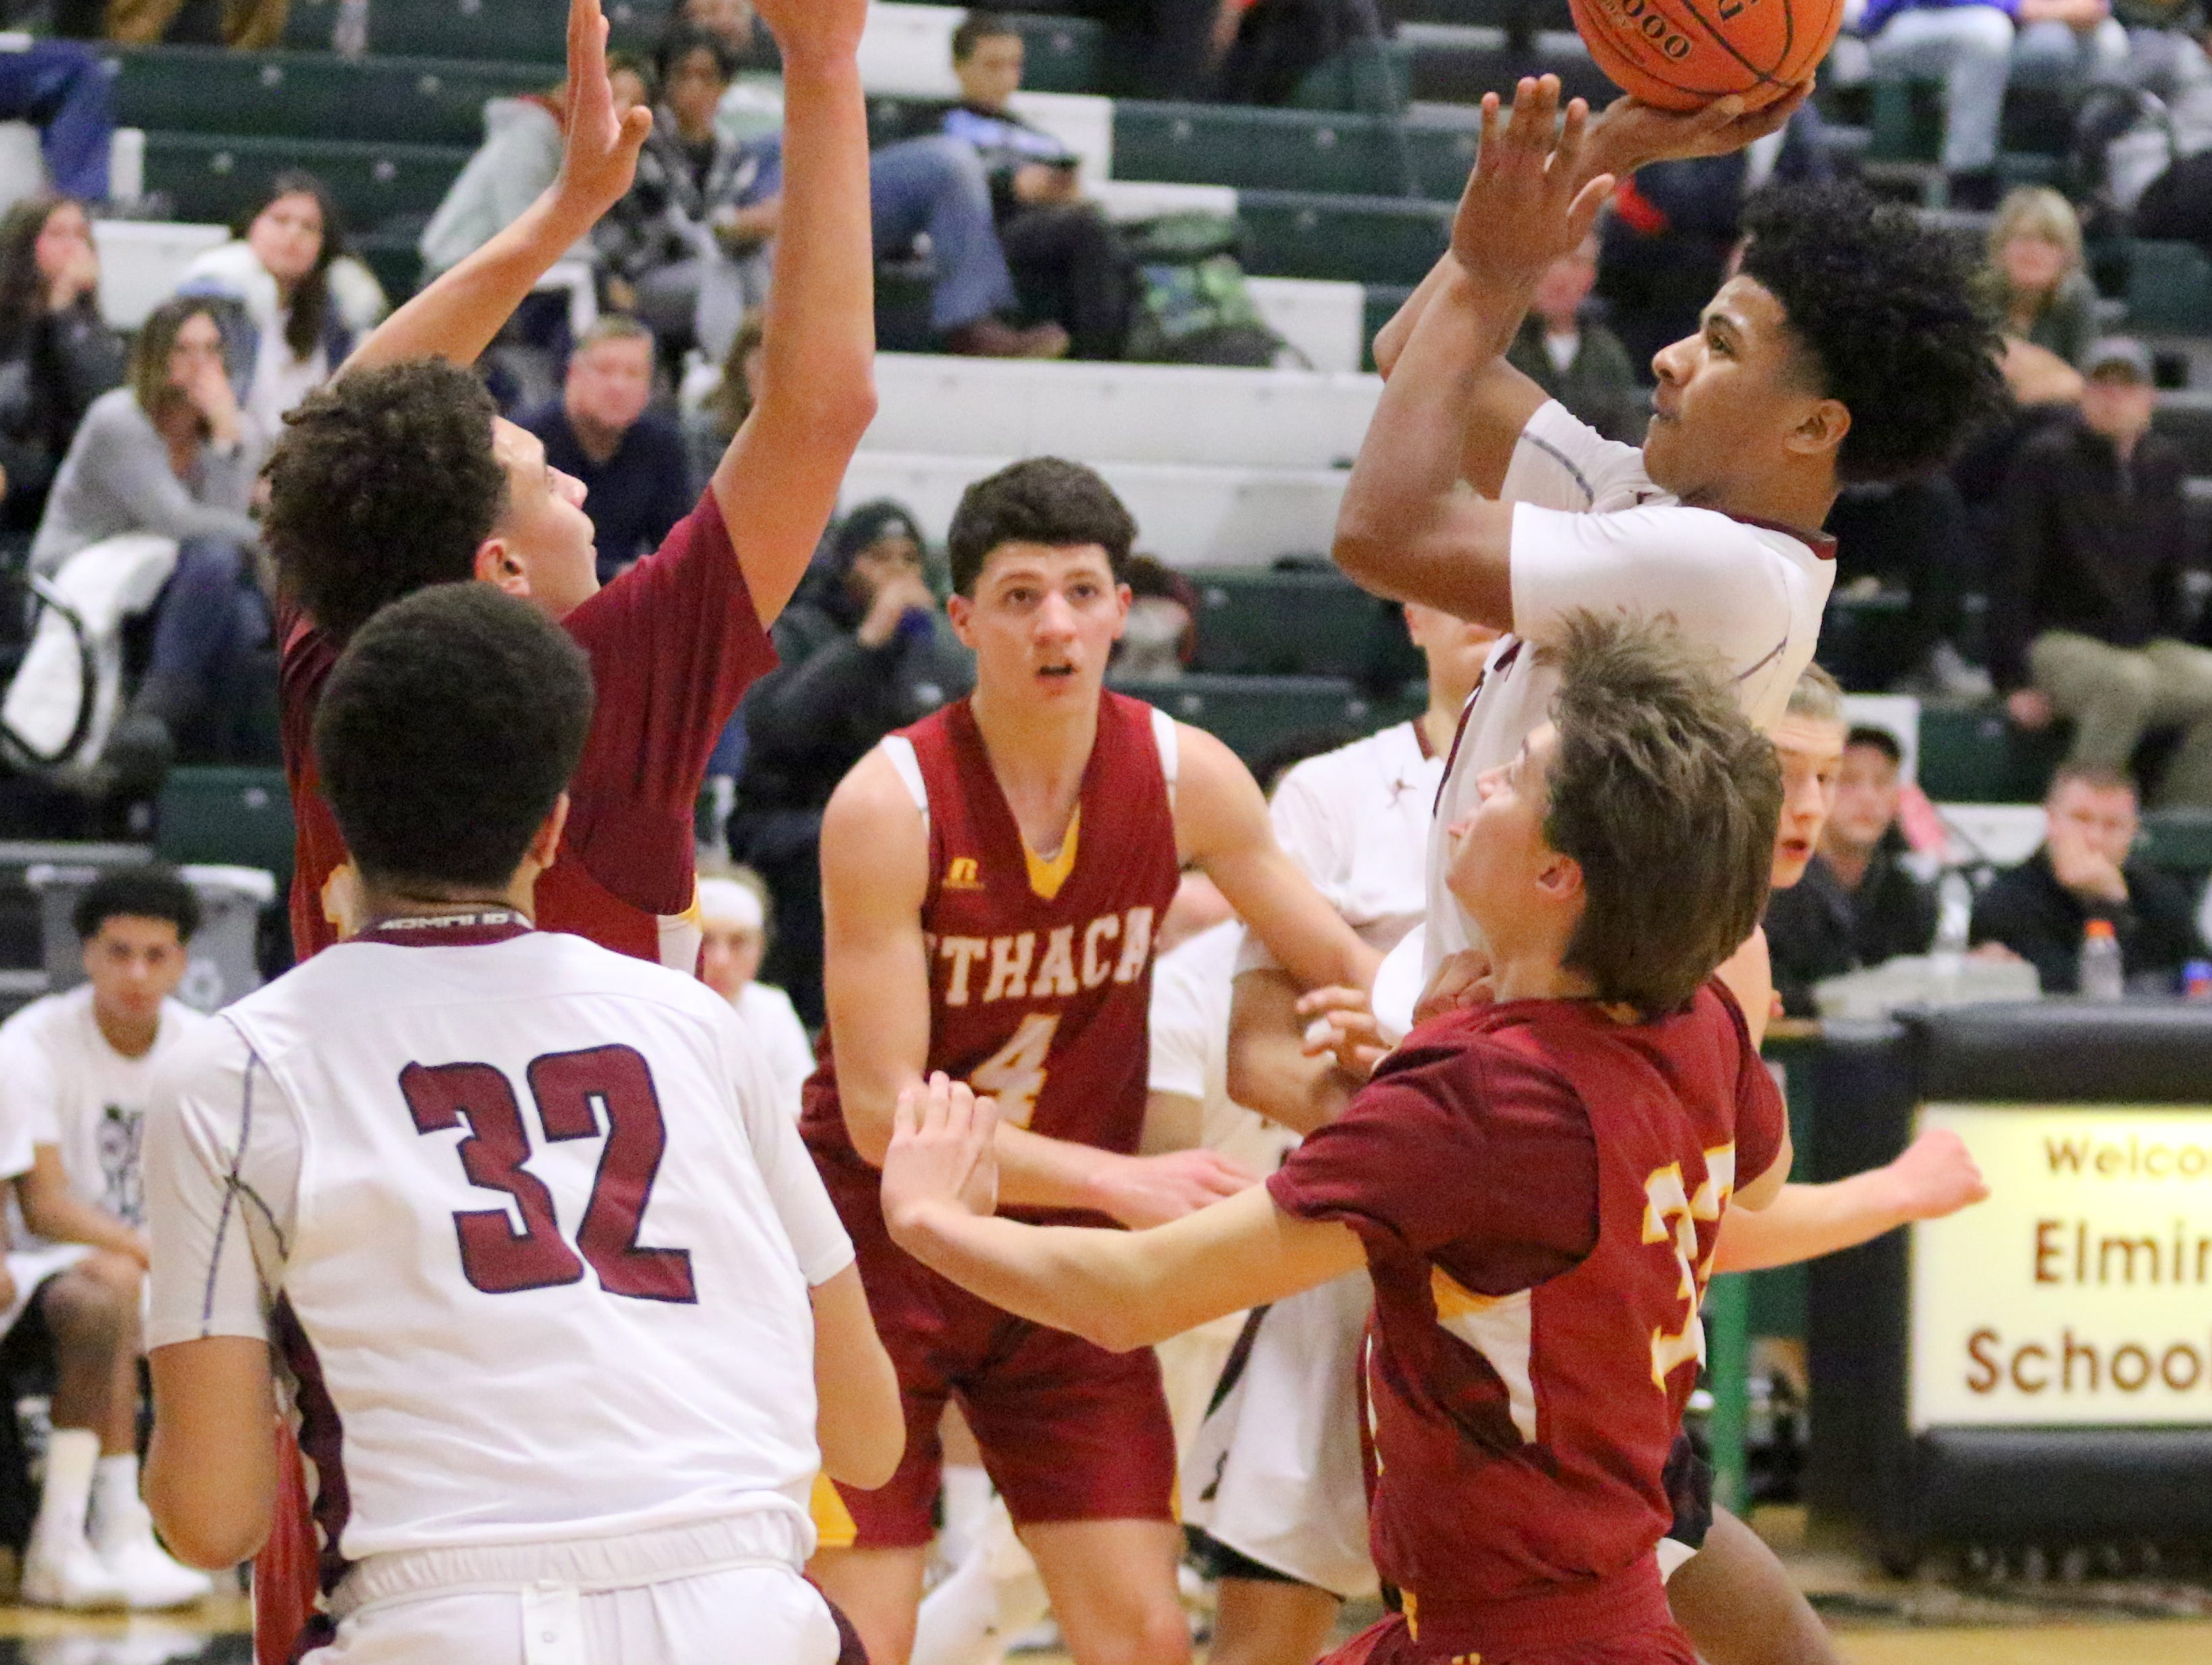 Ithaca was a 46-44 winner over Elmira in boys basketball Jan. 3, 2019 at Elmira High School.